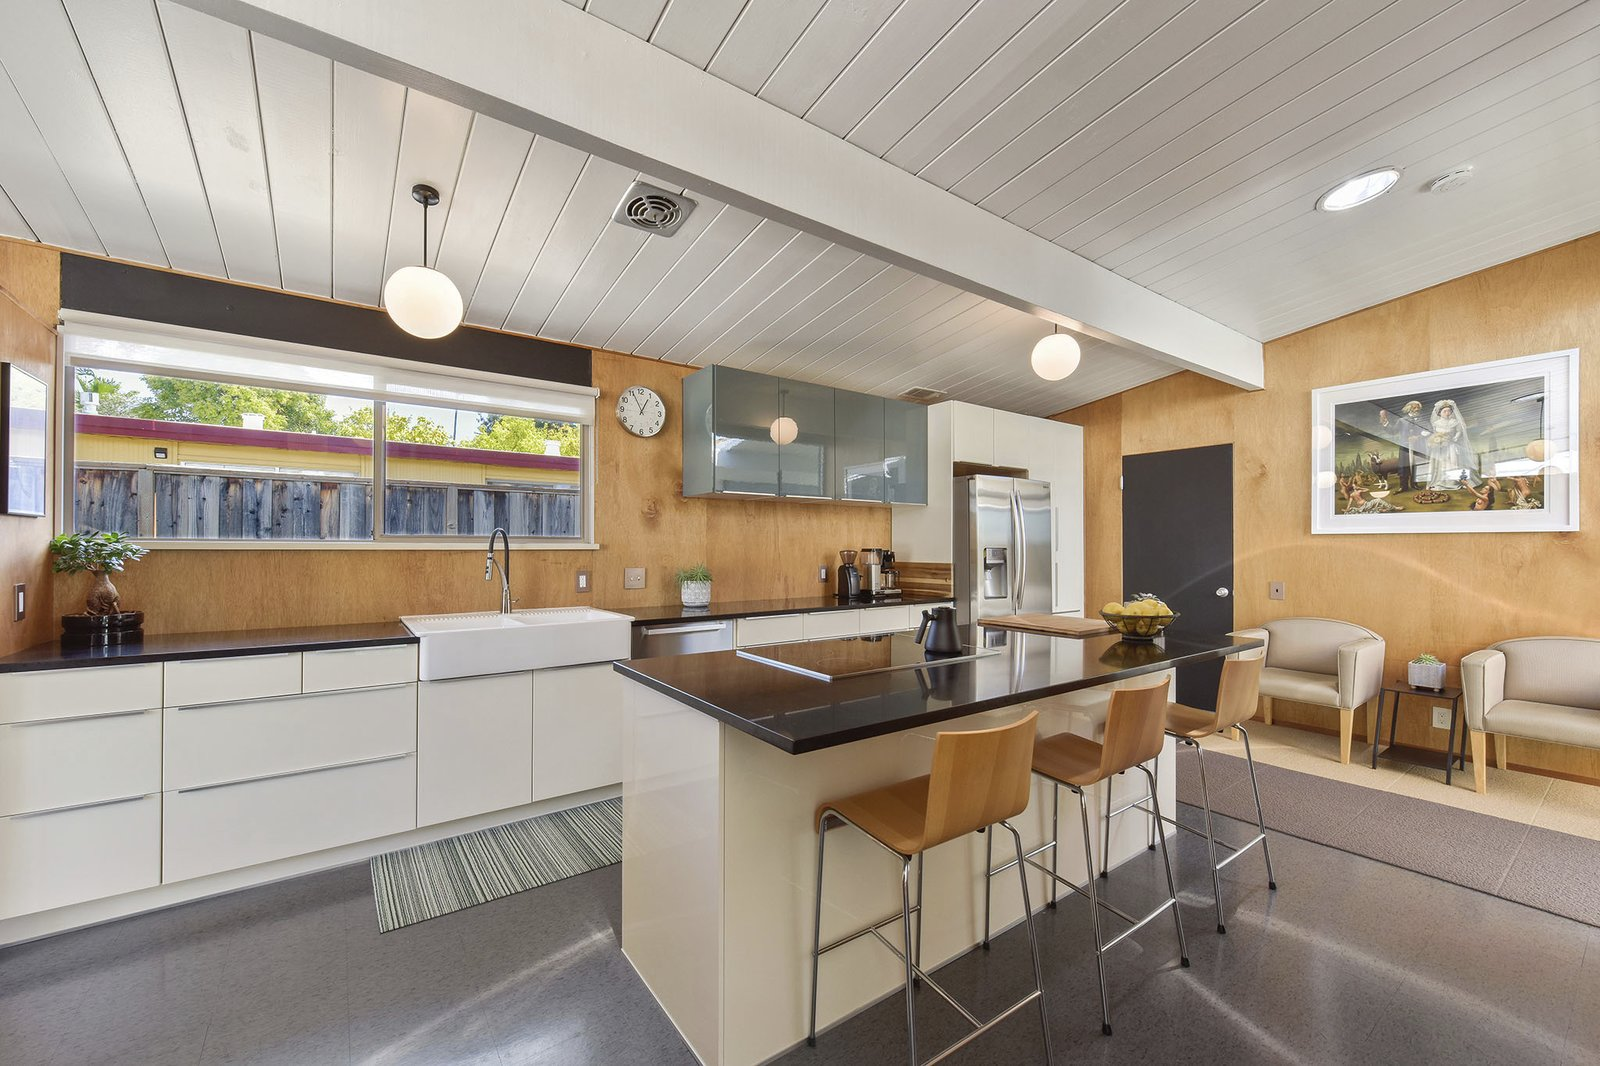 Kitchen, Refrigerator, Wood, Pendant, Cooktops, Vessel, White, and Dishwasher The home also features a double farmhouse sink and high-end stainless steel appliances.    Kitchen Dishwasher Refrigerator Vessel Photos from This Stunning Bay Area Eichler Just Listed For $775K